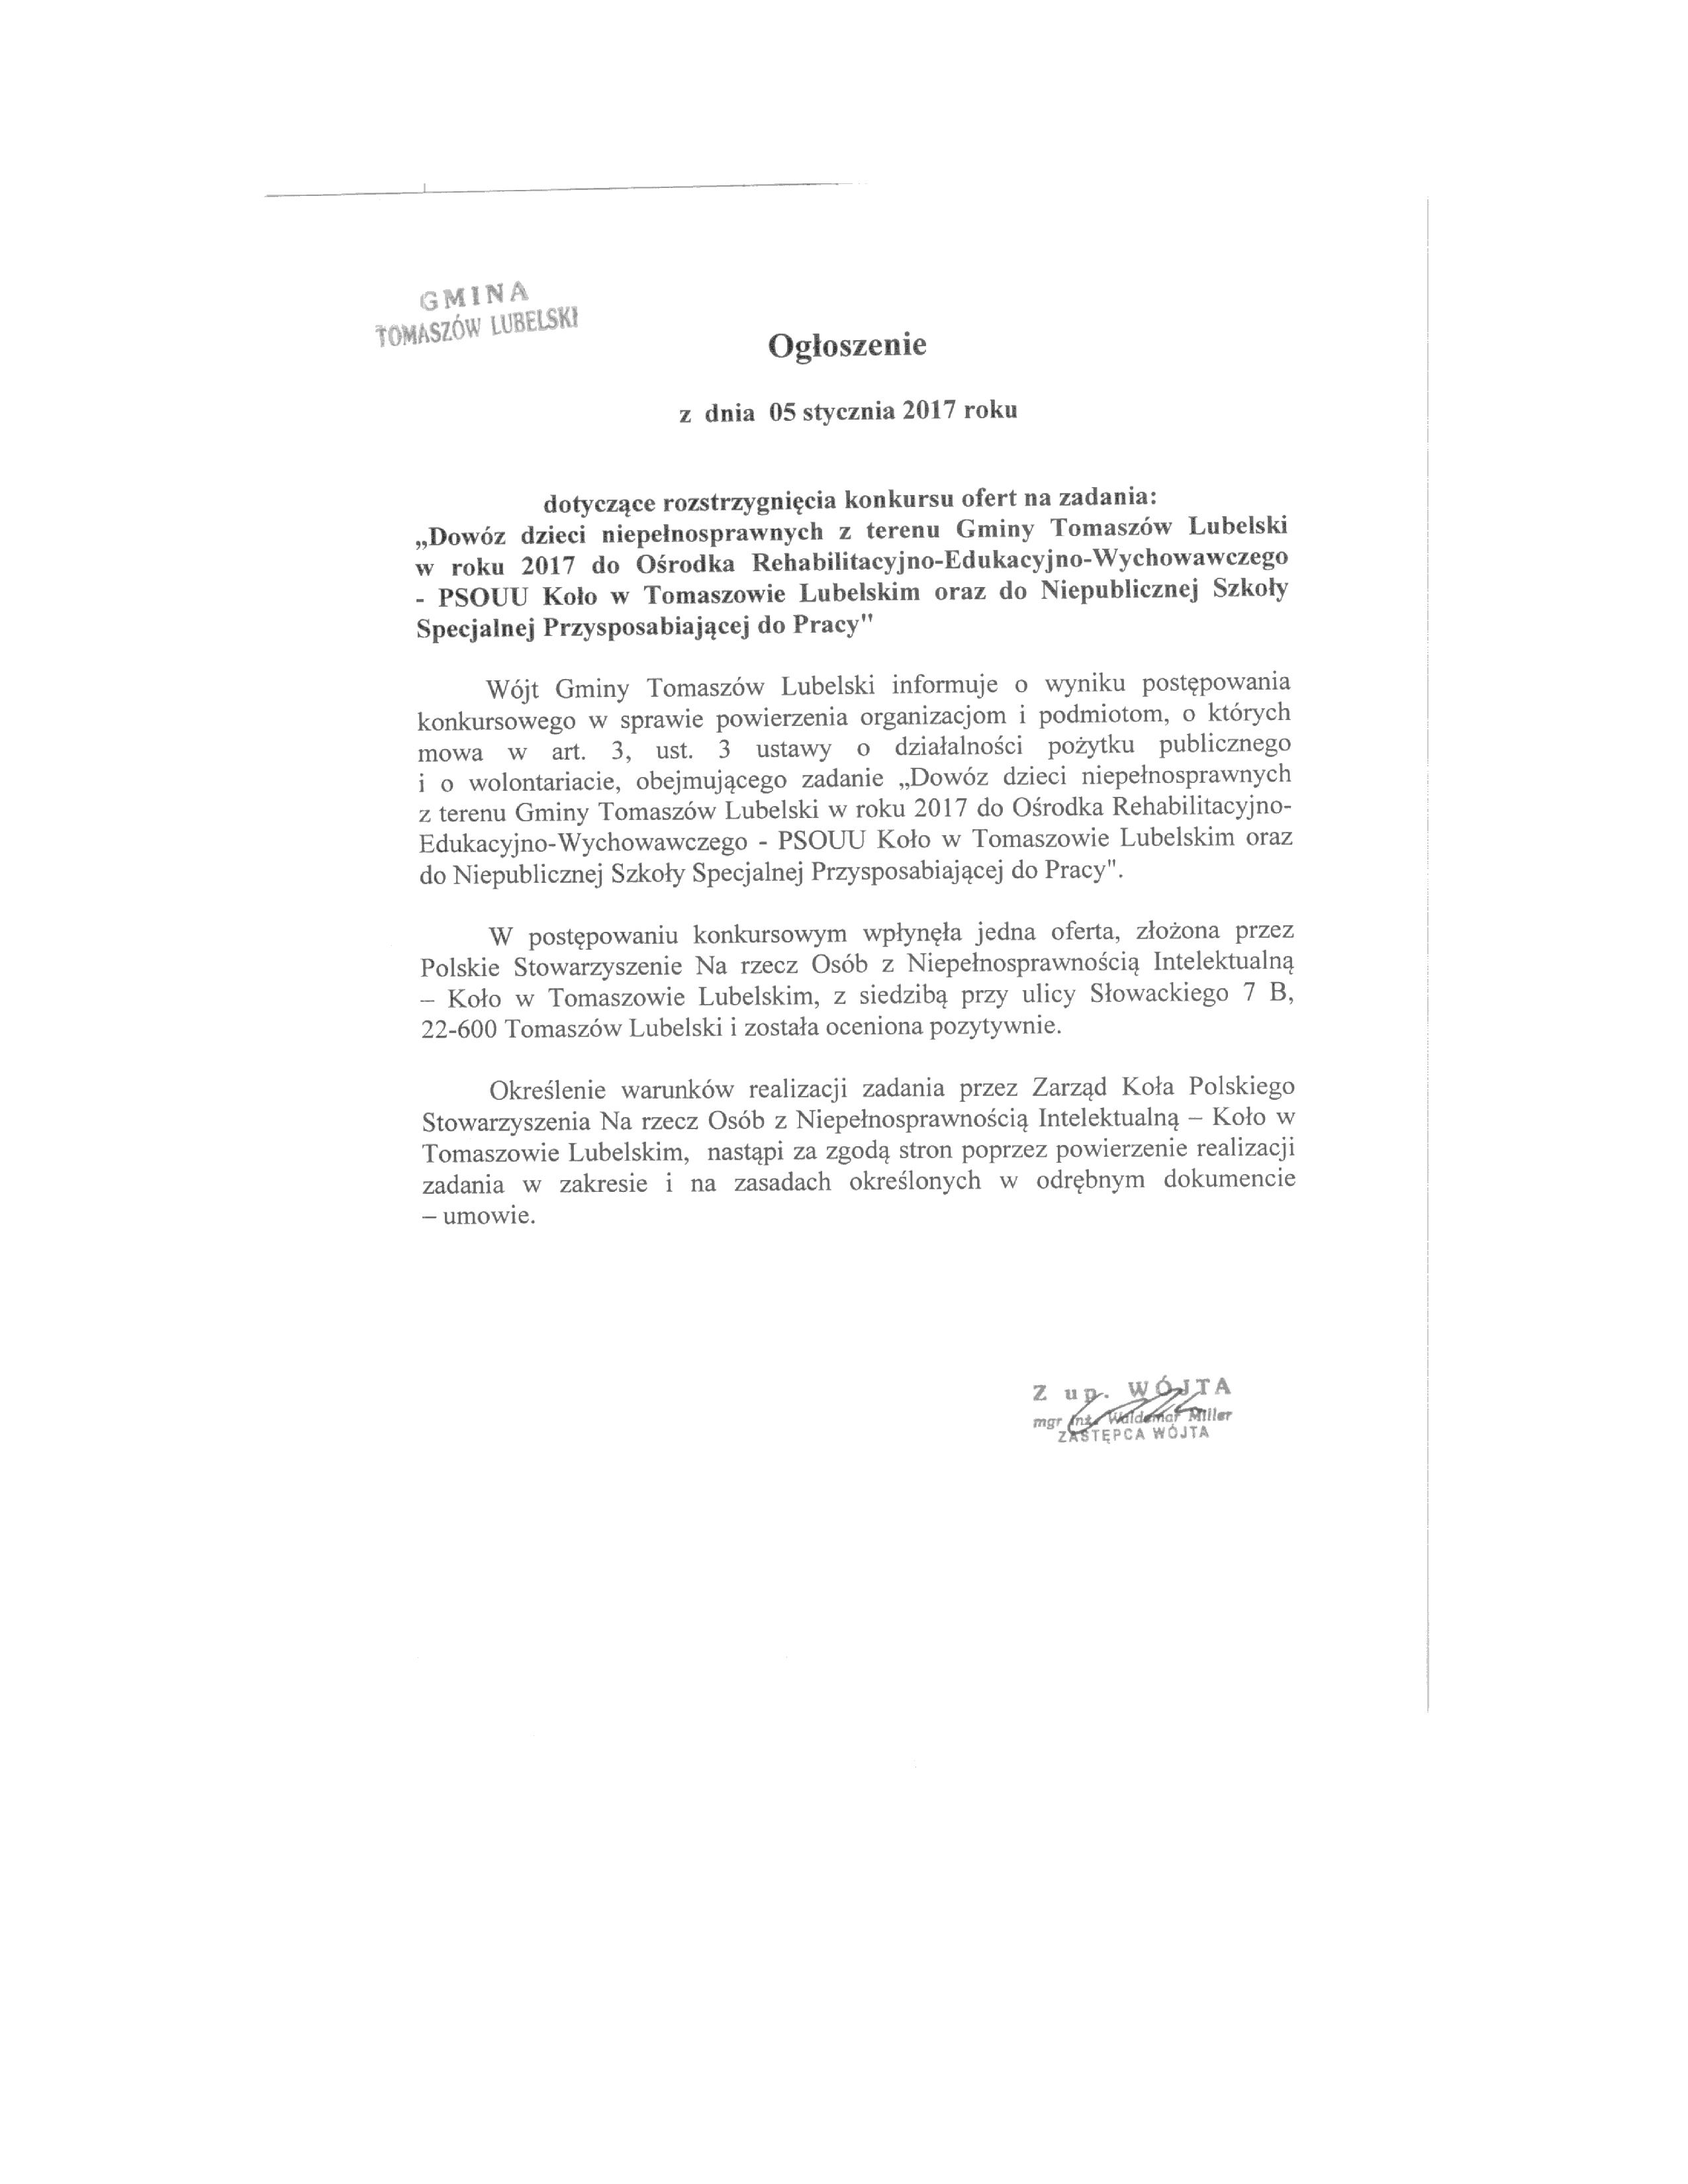 - document-page-001.jpg